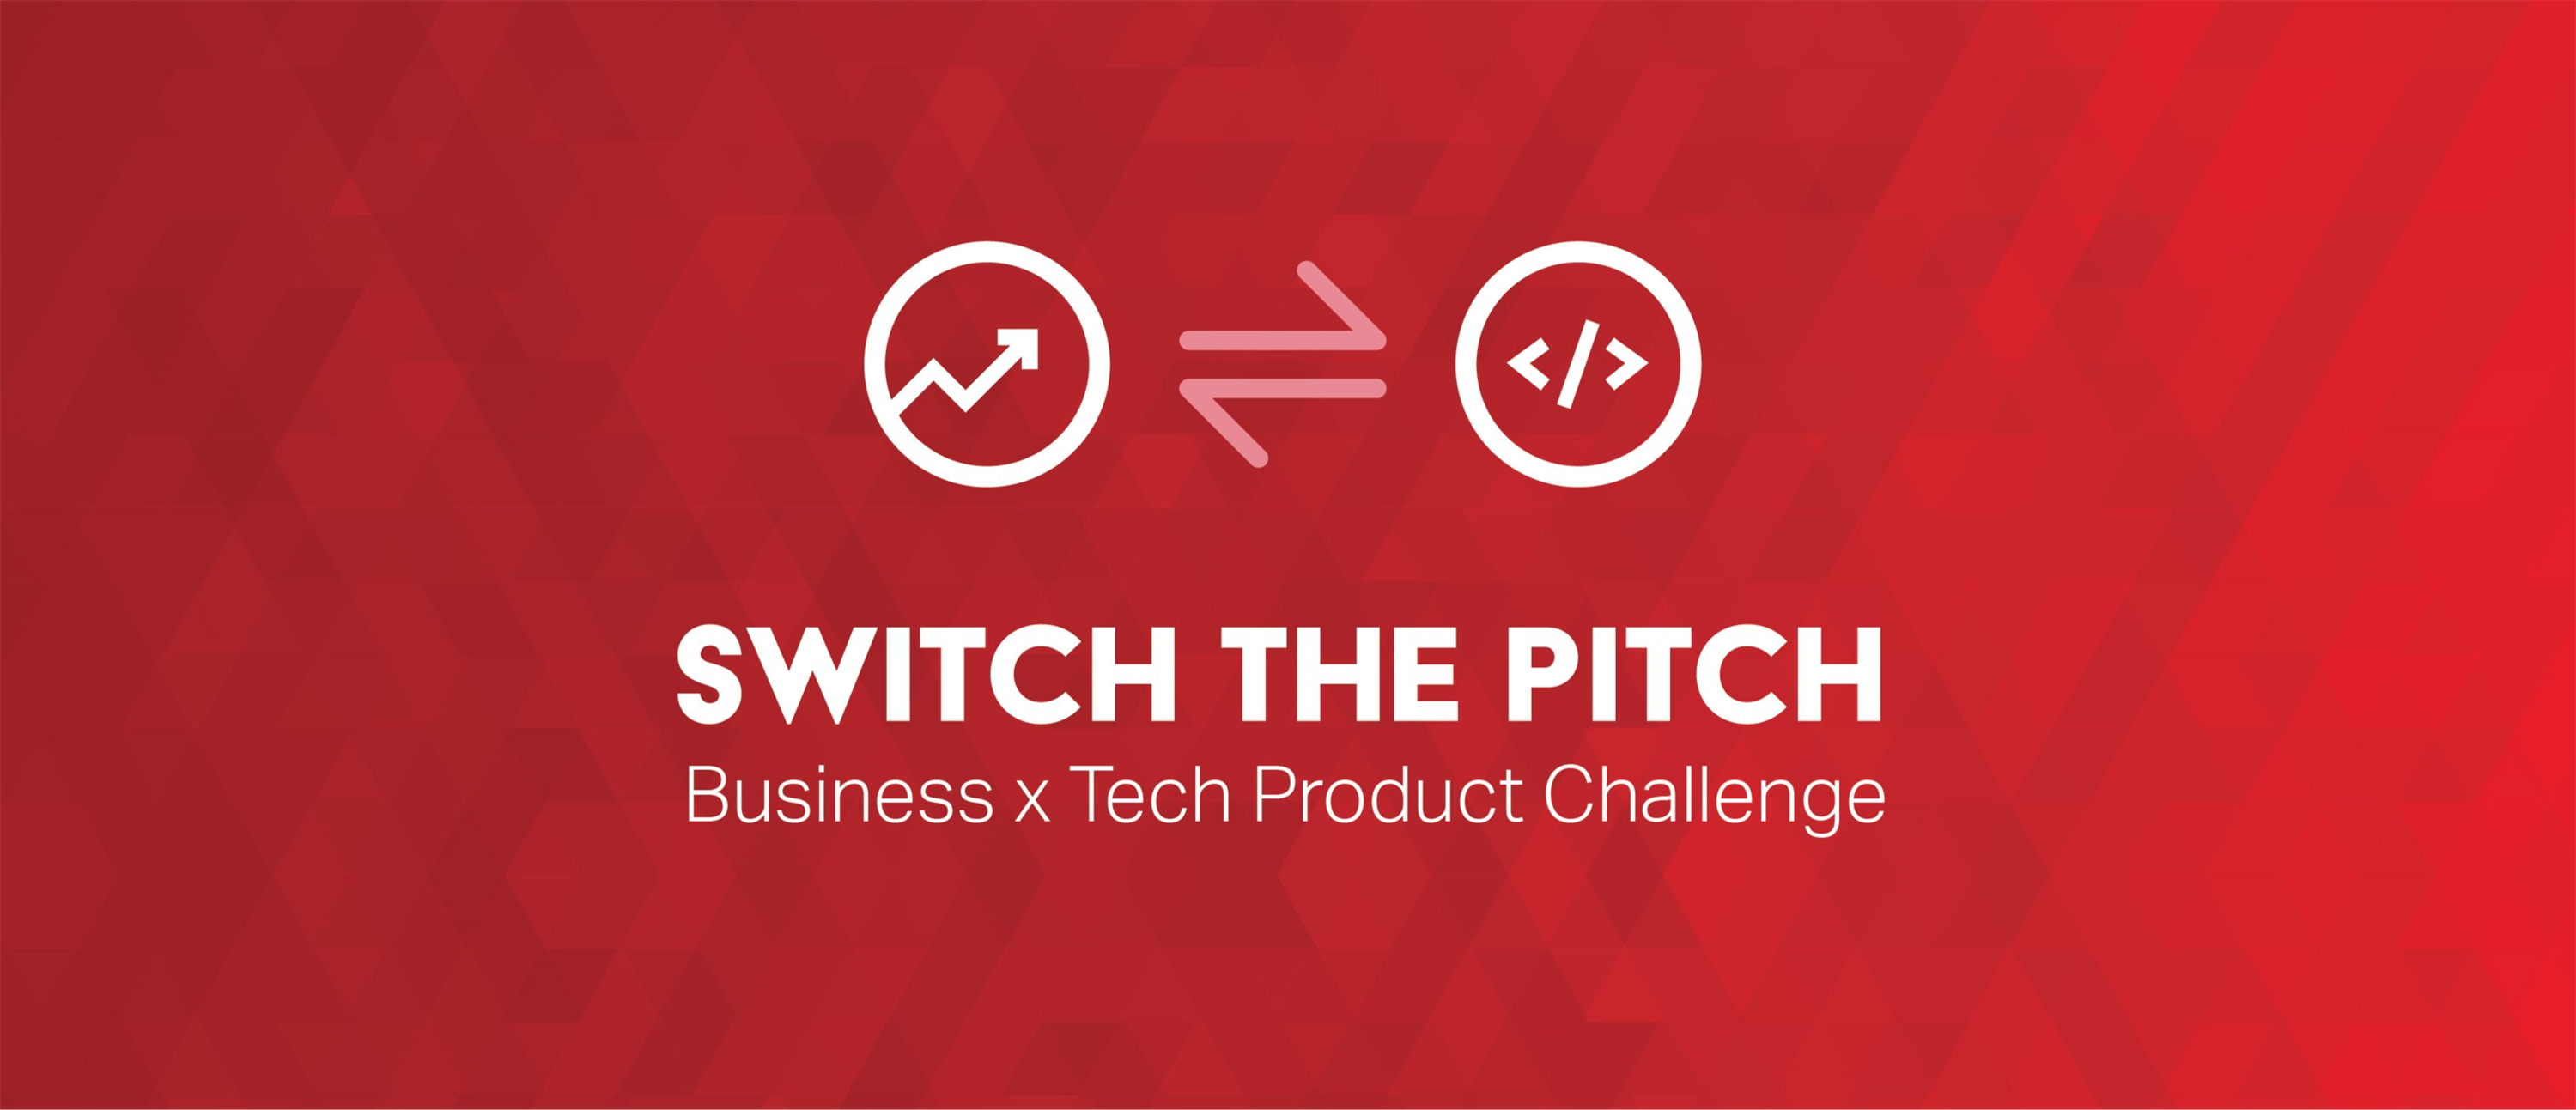 Switch the Pitch: A Business x Tech Product Challenge